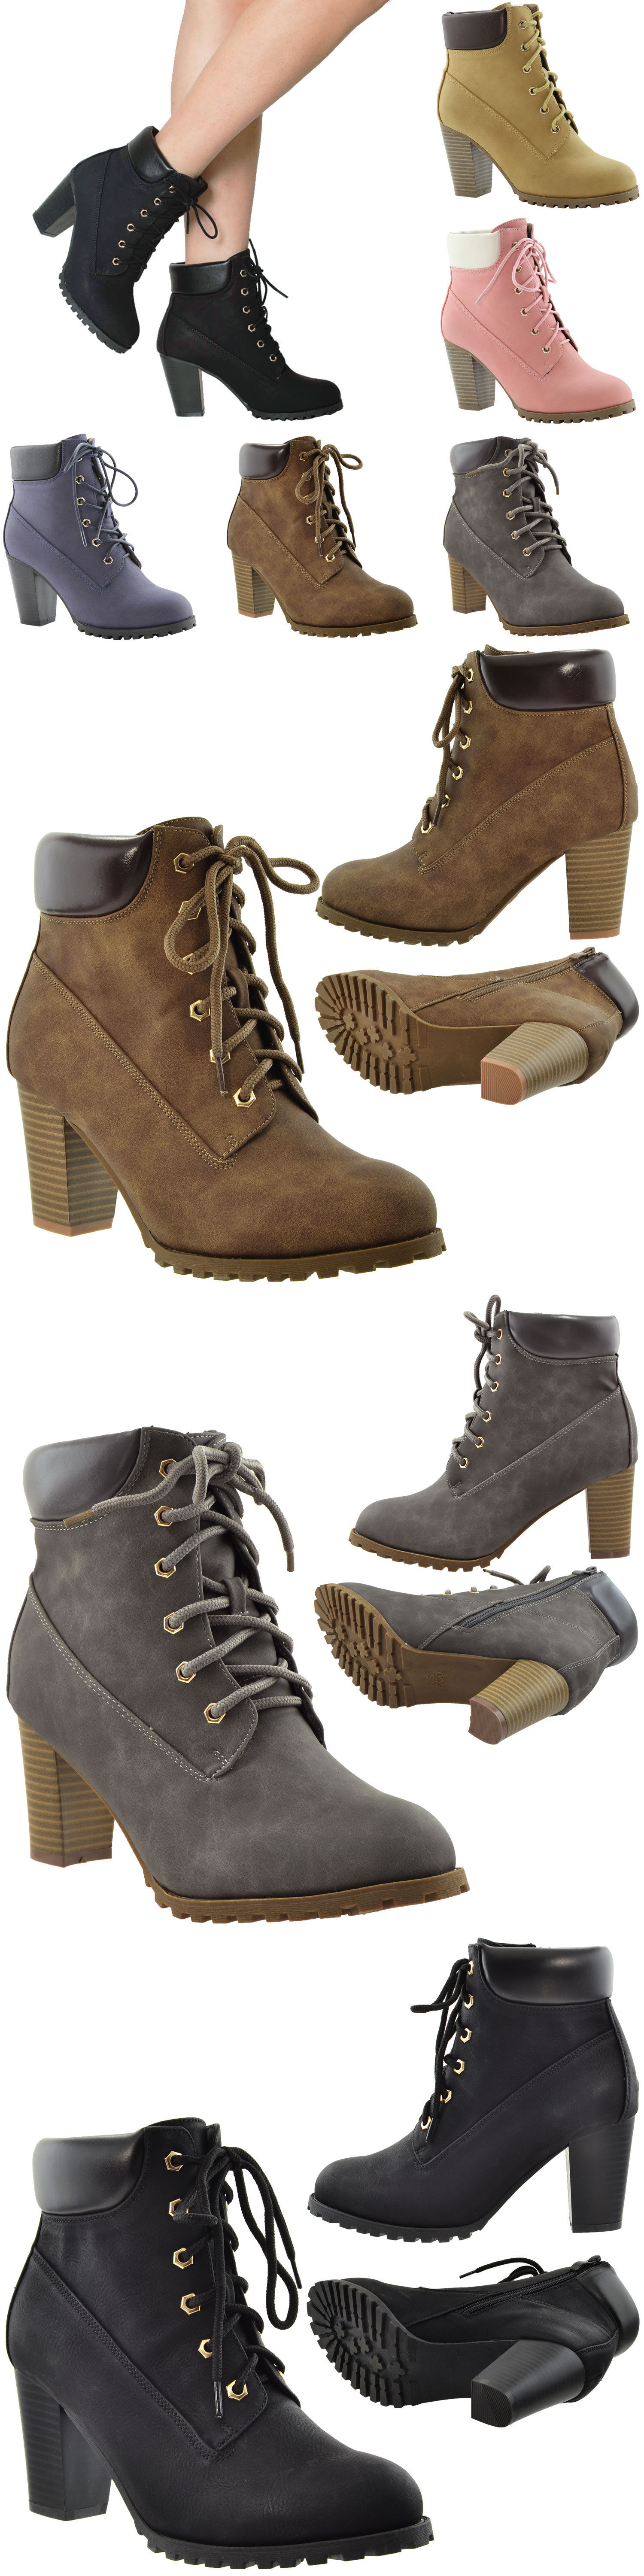 0d7d8a751bf Boots 53557: Women S Ankle Boots Lace Up Booties Chunky Stacked High Heel  Rugged Padded Shoes -> BUY IT NOW ONLY: $35.95 on eBay!